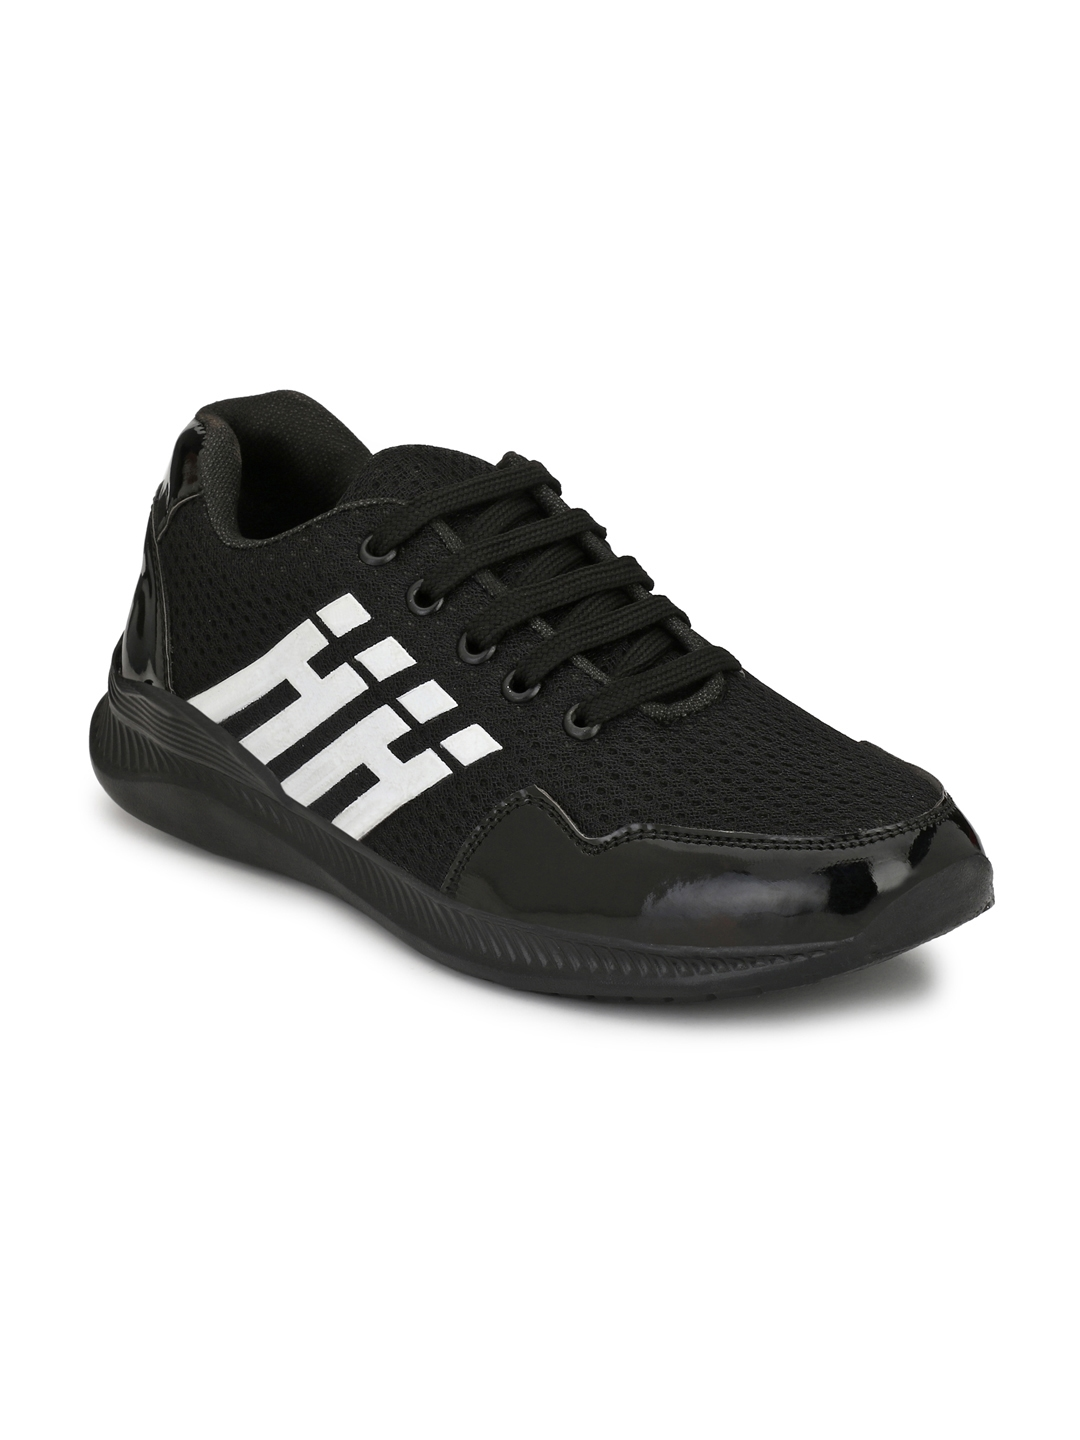 Men Black Sneakers at Rs.599